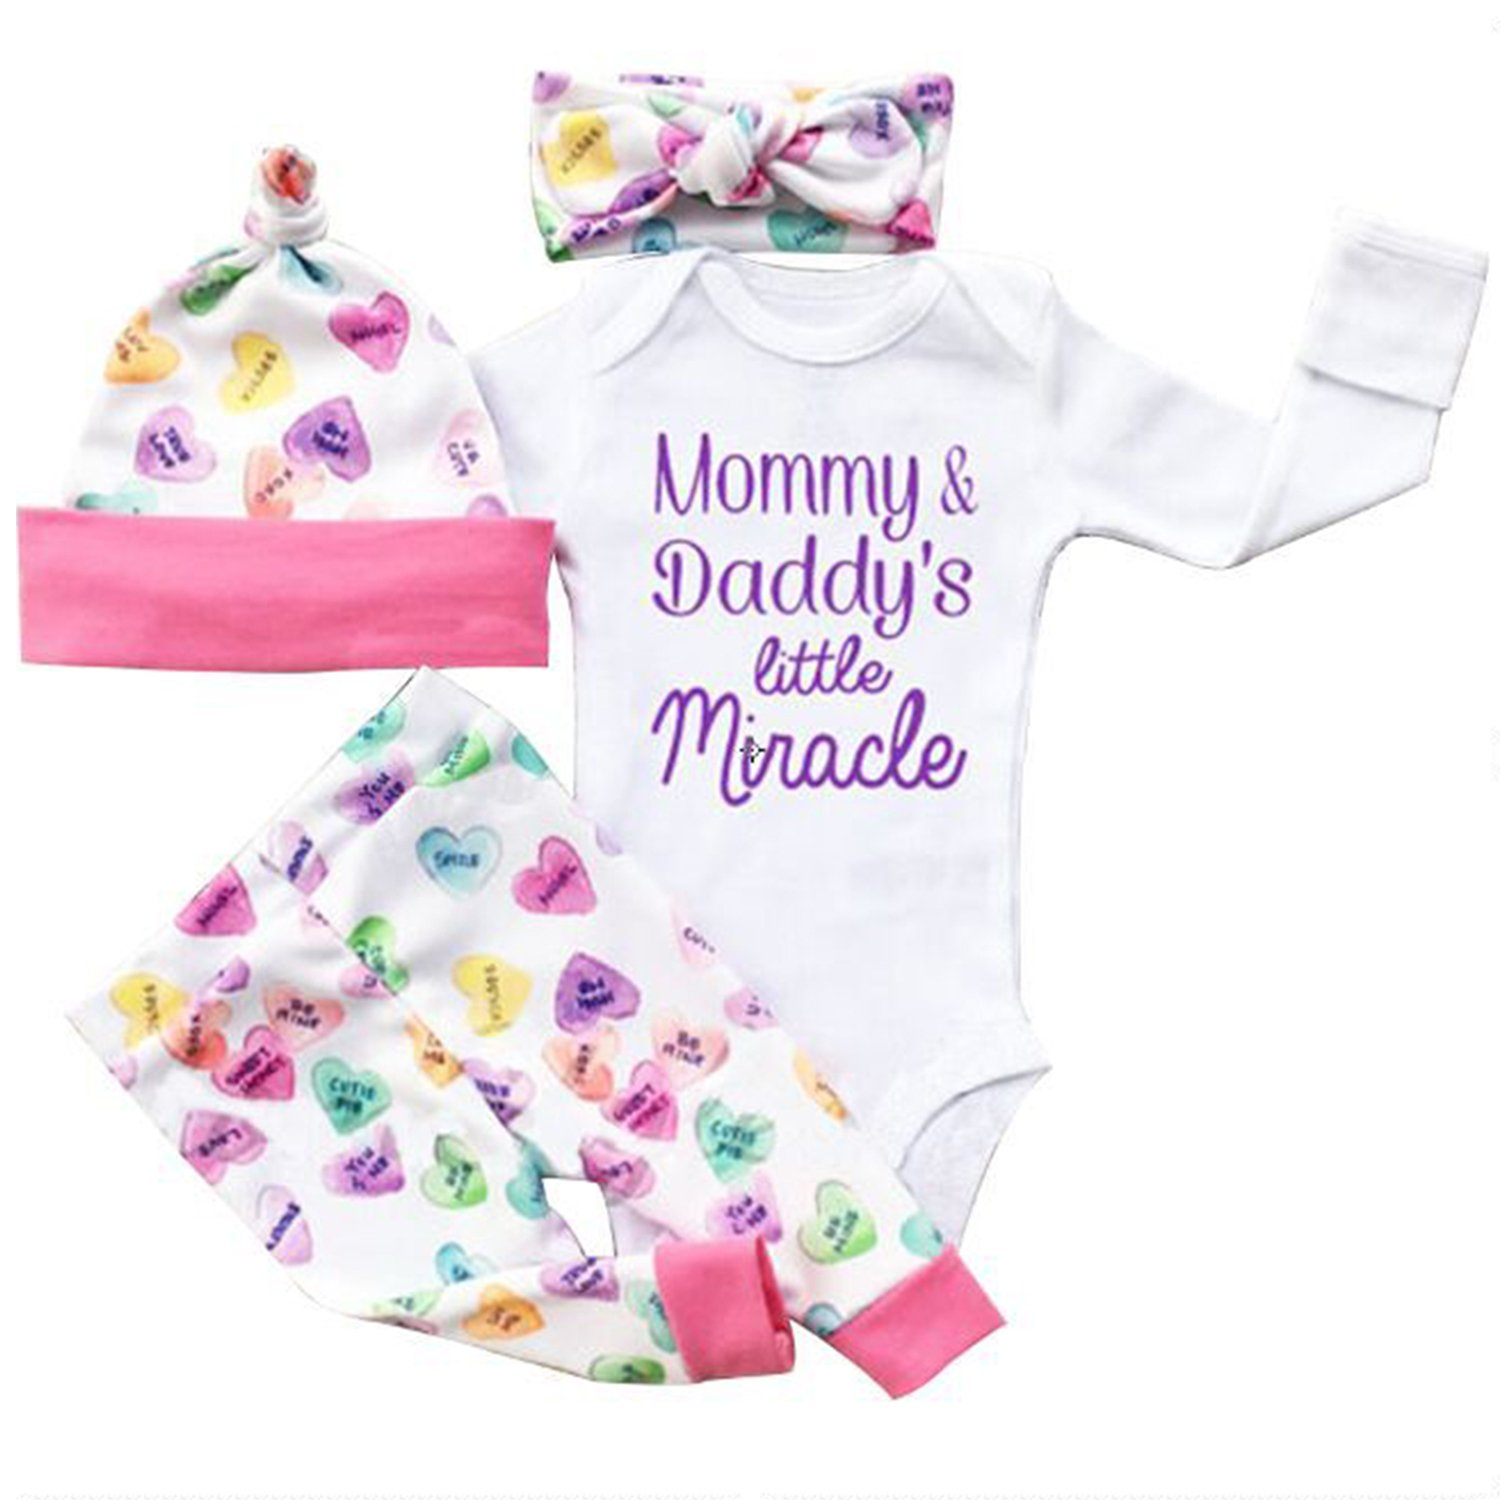 Opperiaya 4 Pcs Newborn Baby Girls Clothes Miracles Letter Romper Outfit Pants Set +Hat+Headband